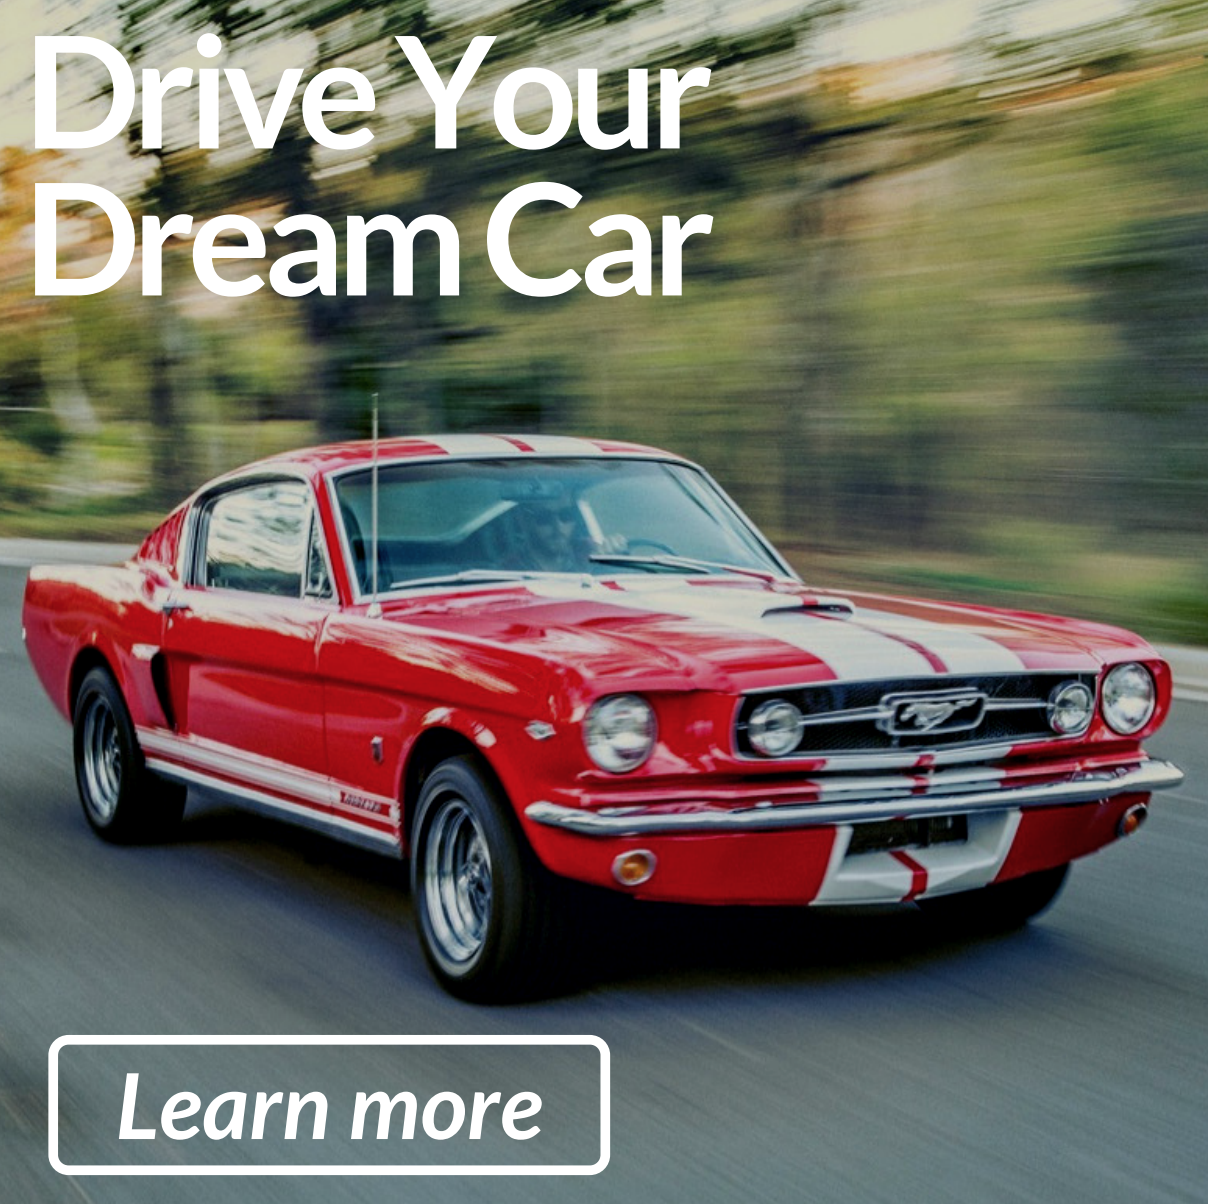 Drive Your Dream Car